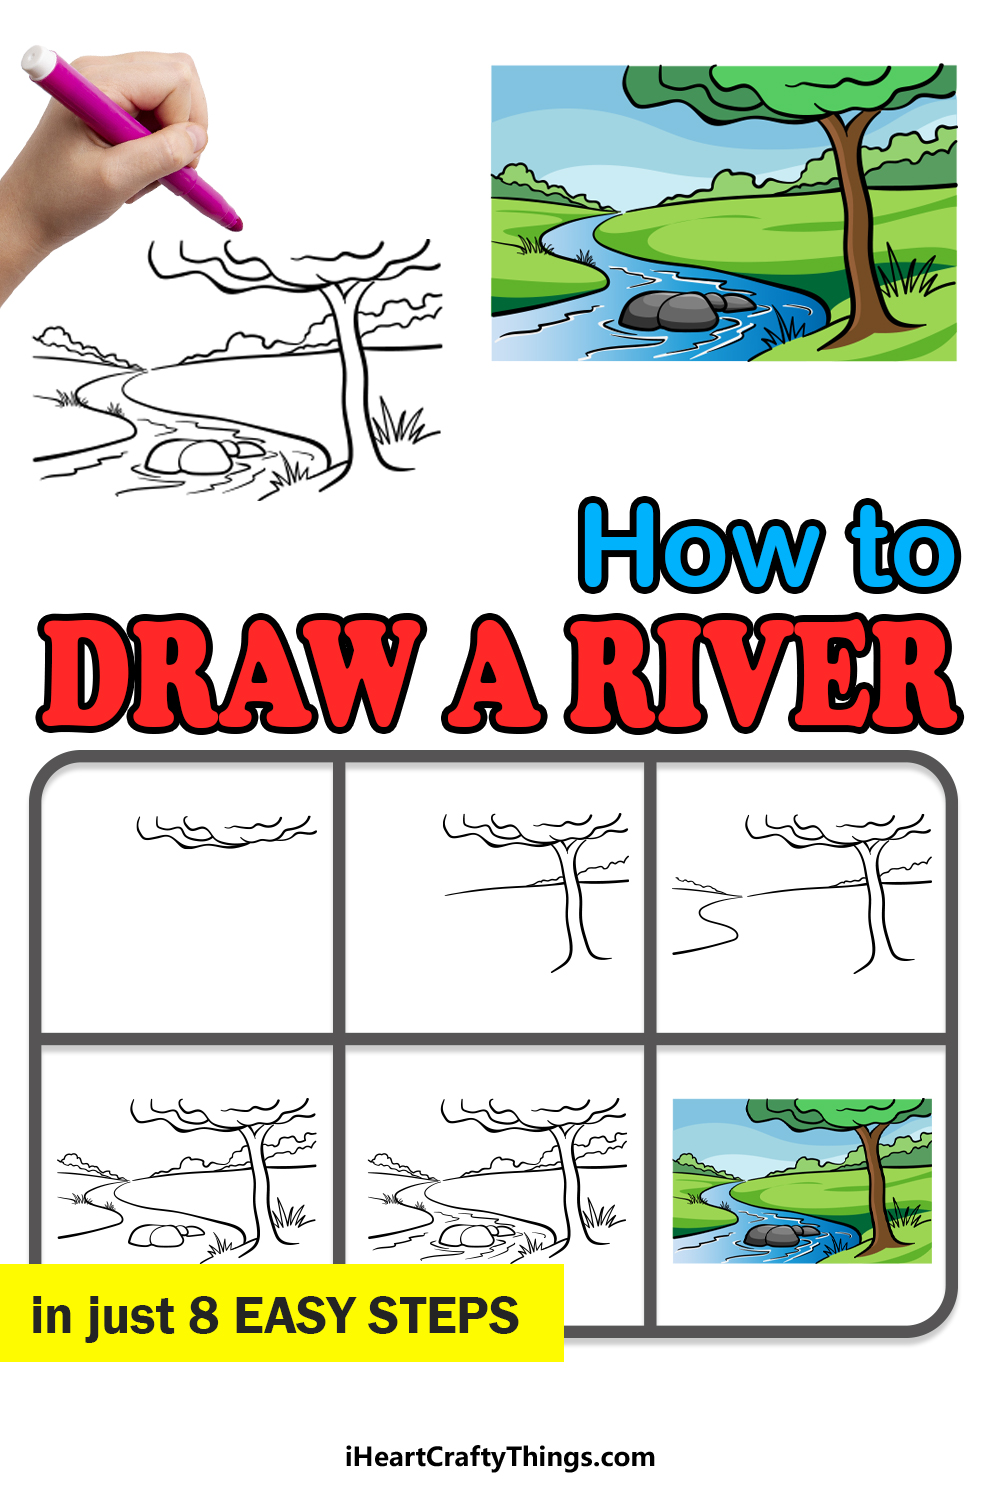 how to draw a river in 8 easy steps